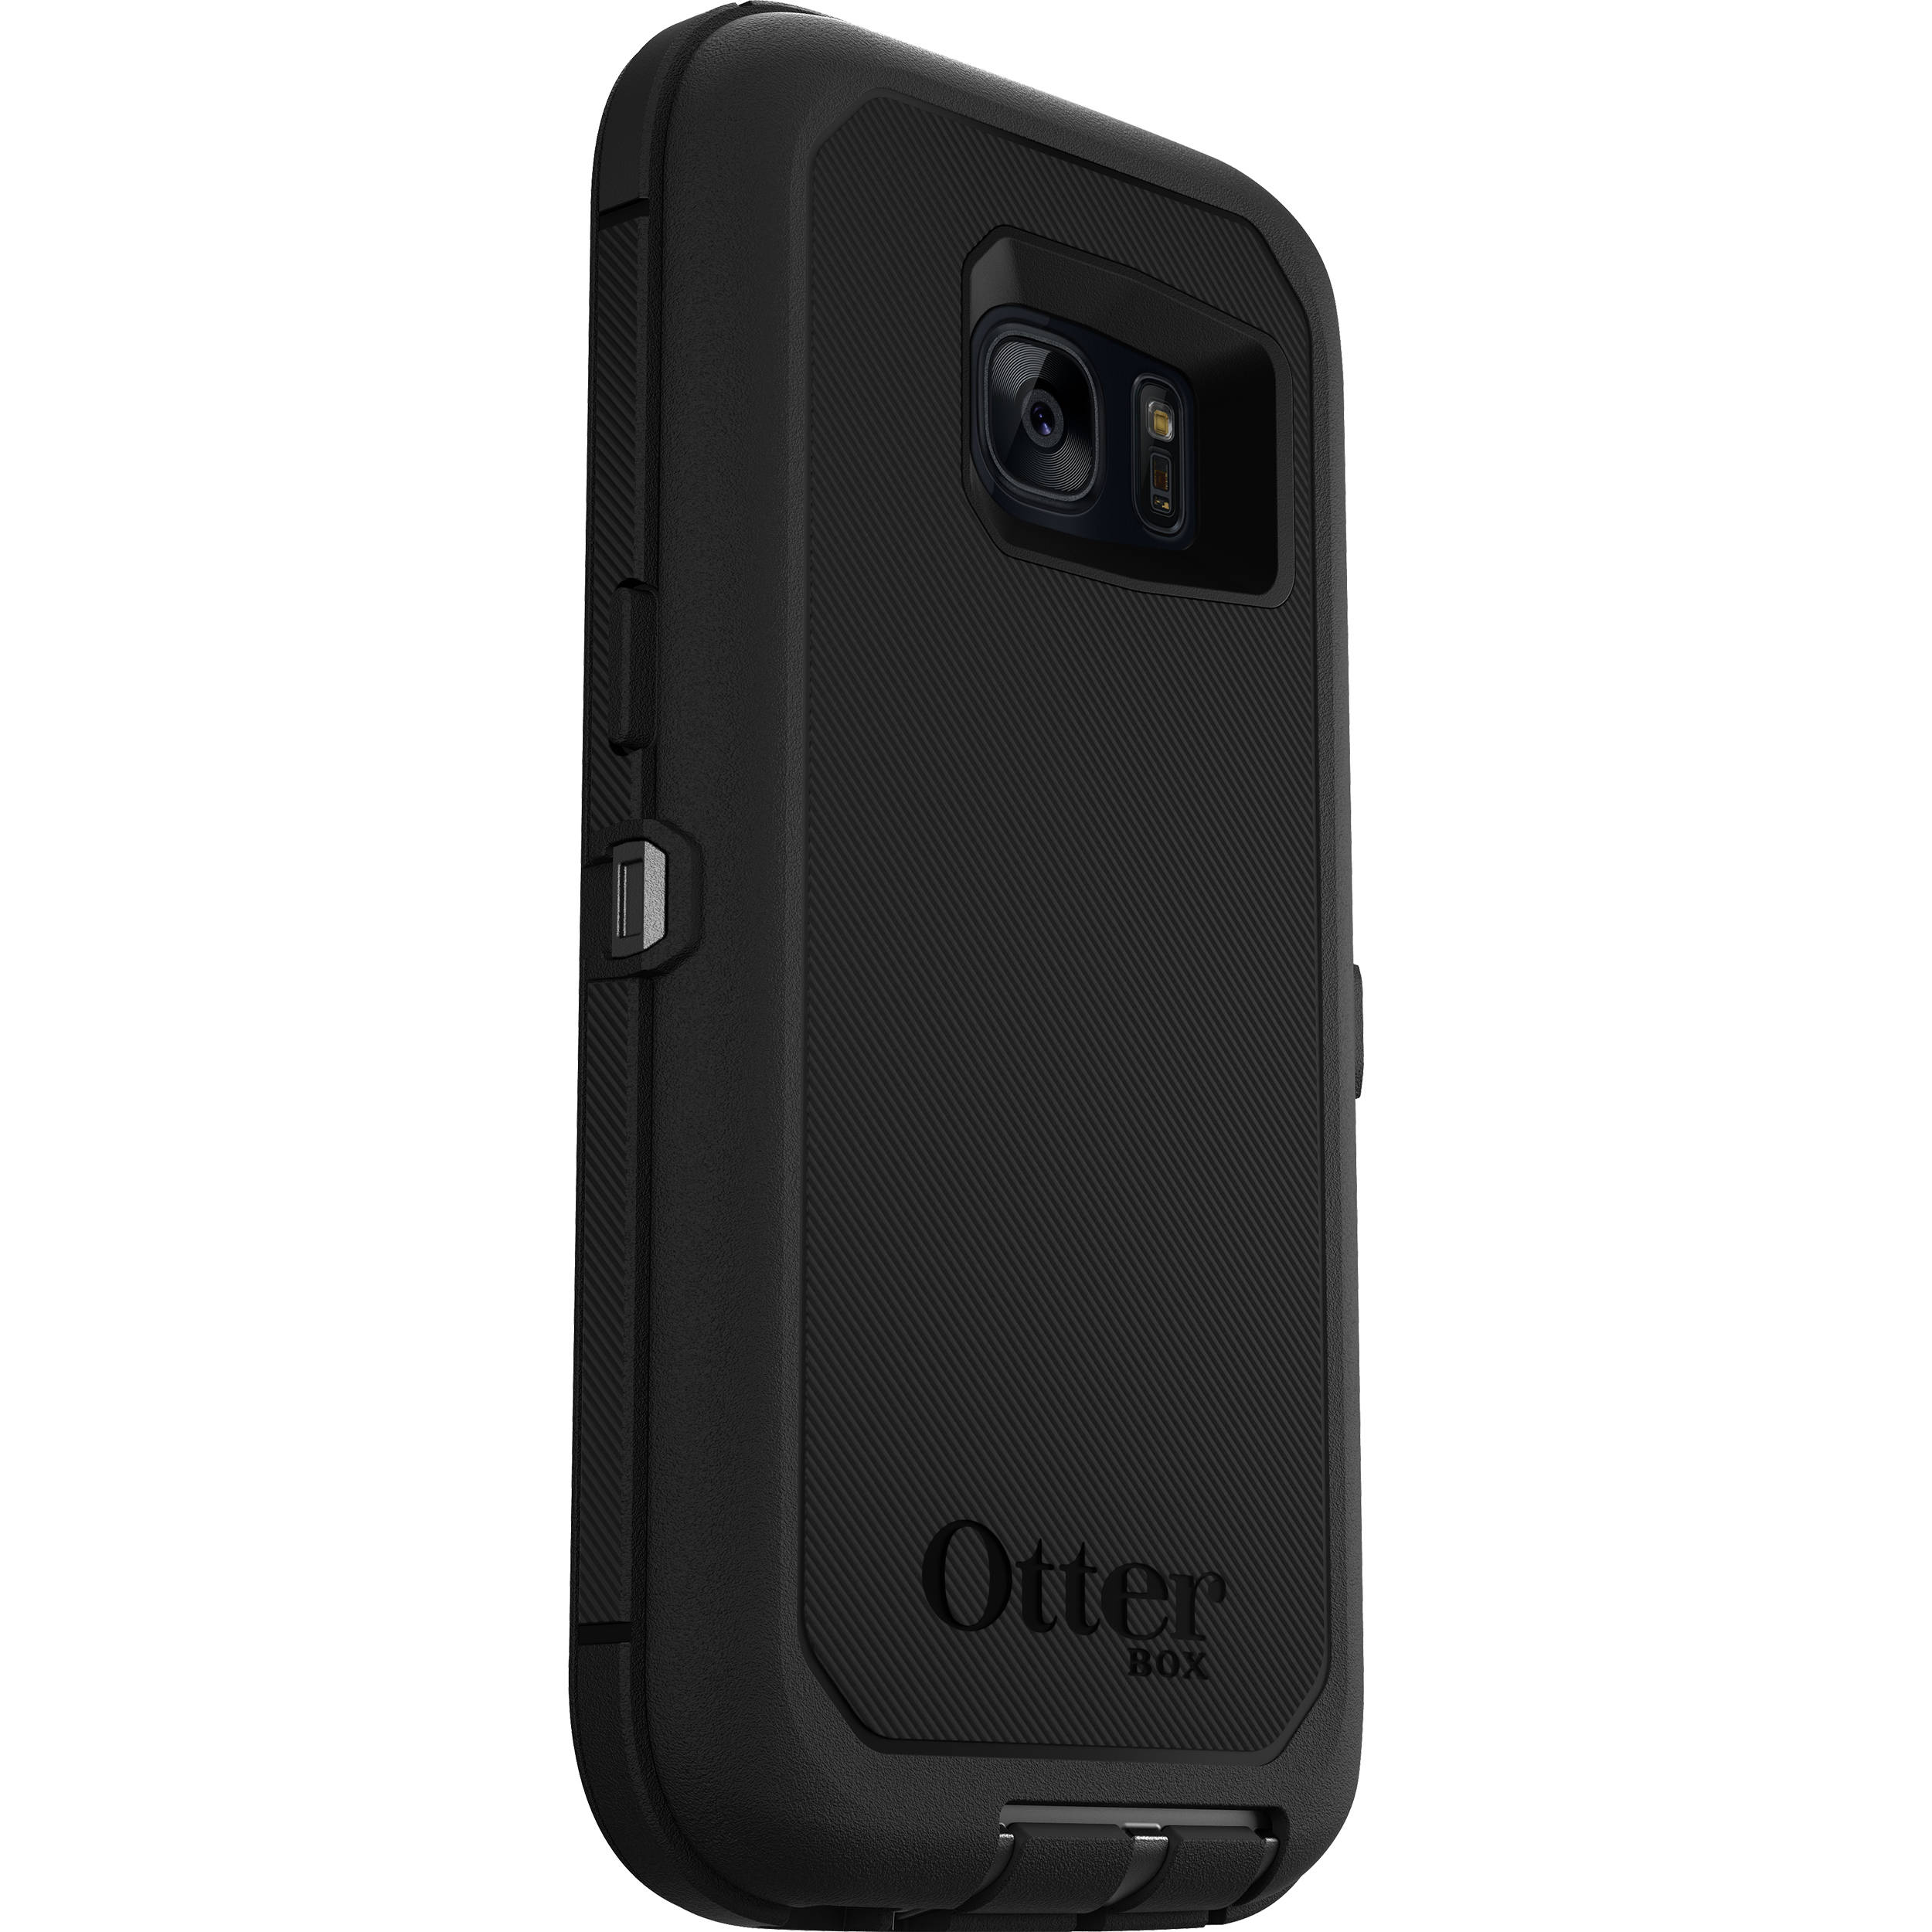 hot sale online 80bfc 25fc9 OtterBox Defender Series Case for Galaxy S7 (Black)